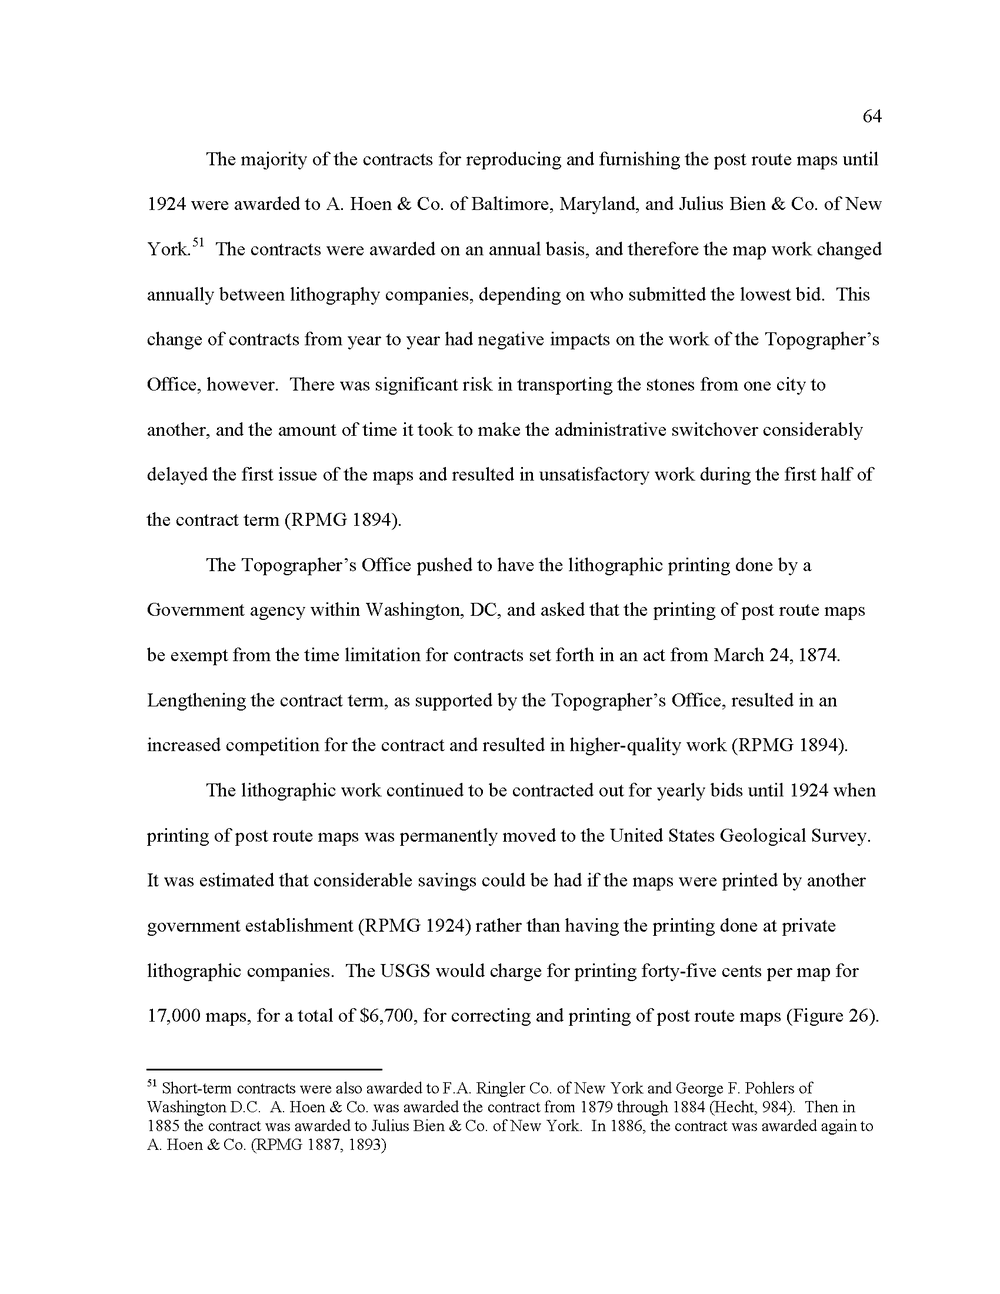 Thesis Final_Page_068.png